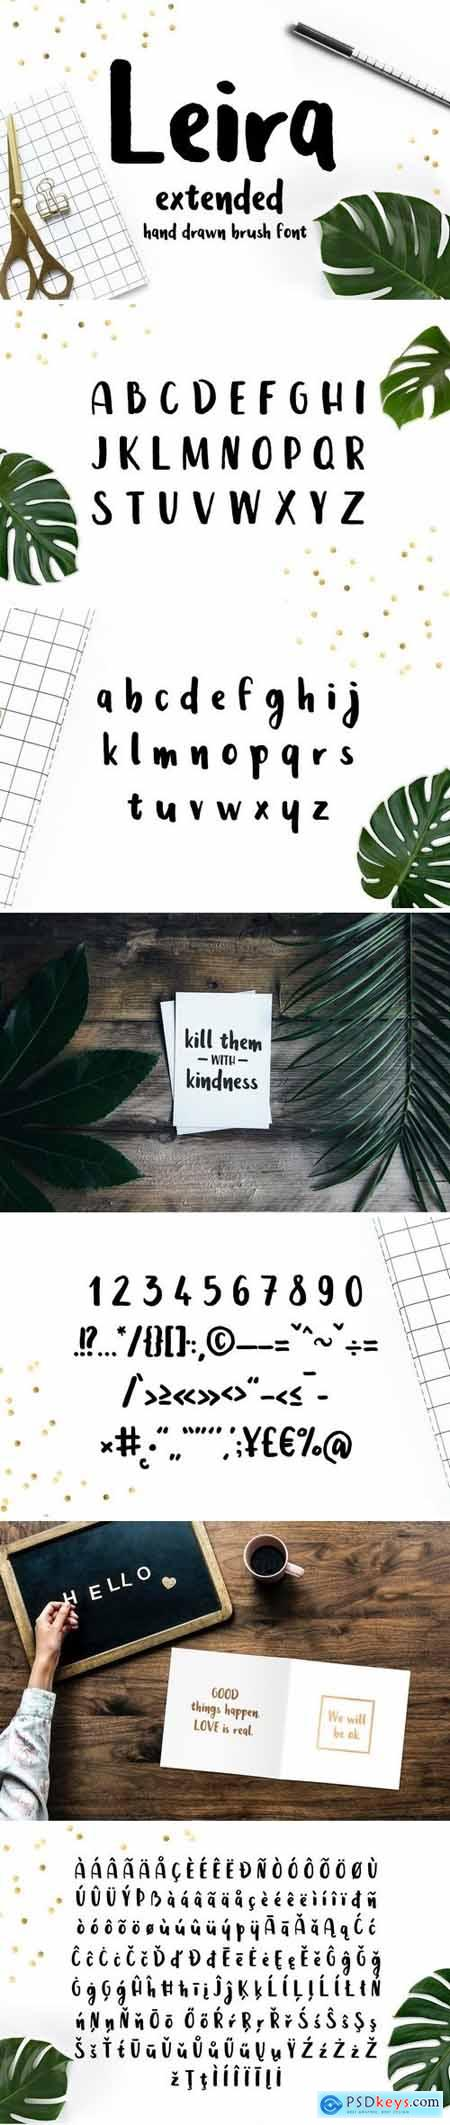 Leira Extended Hand Drawn Brush Font 2700861